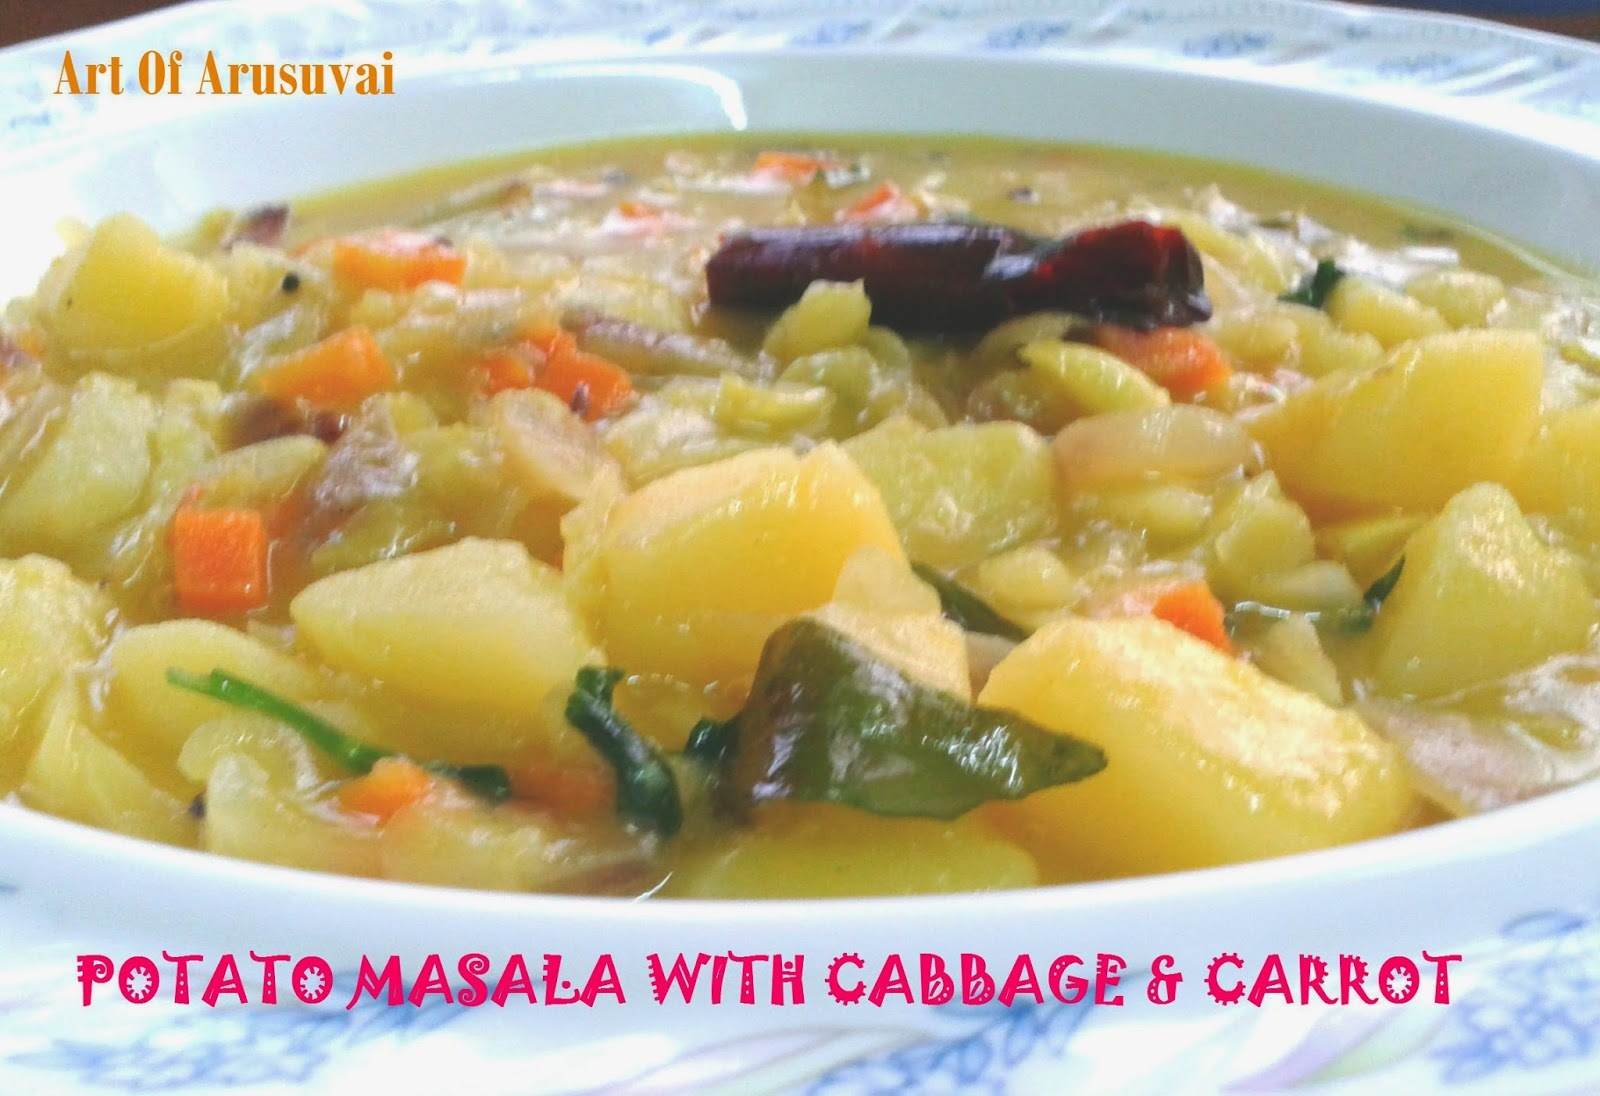 ^ POTATO MASALA WITH CABBAGE & CARROT ^